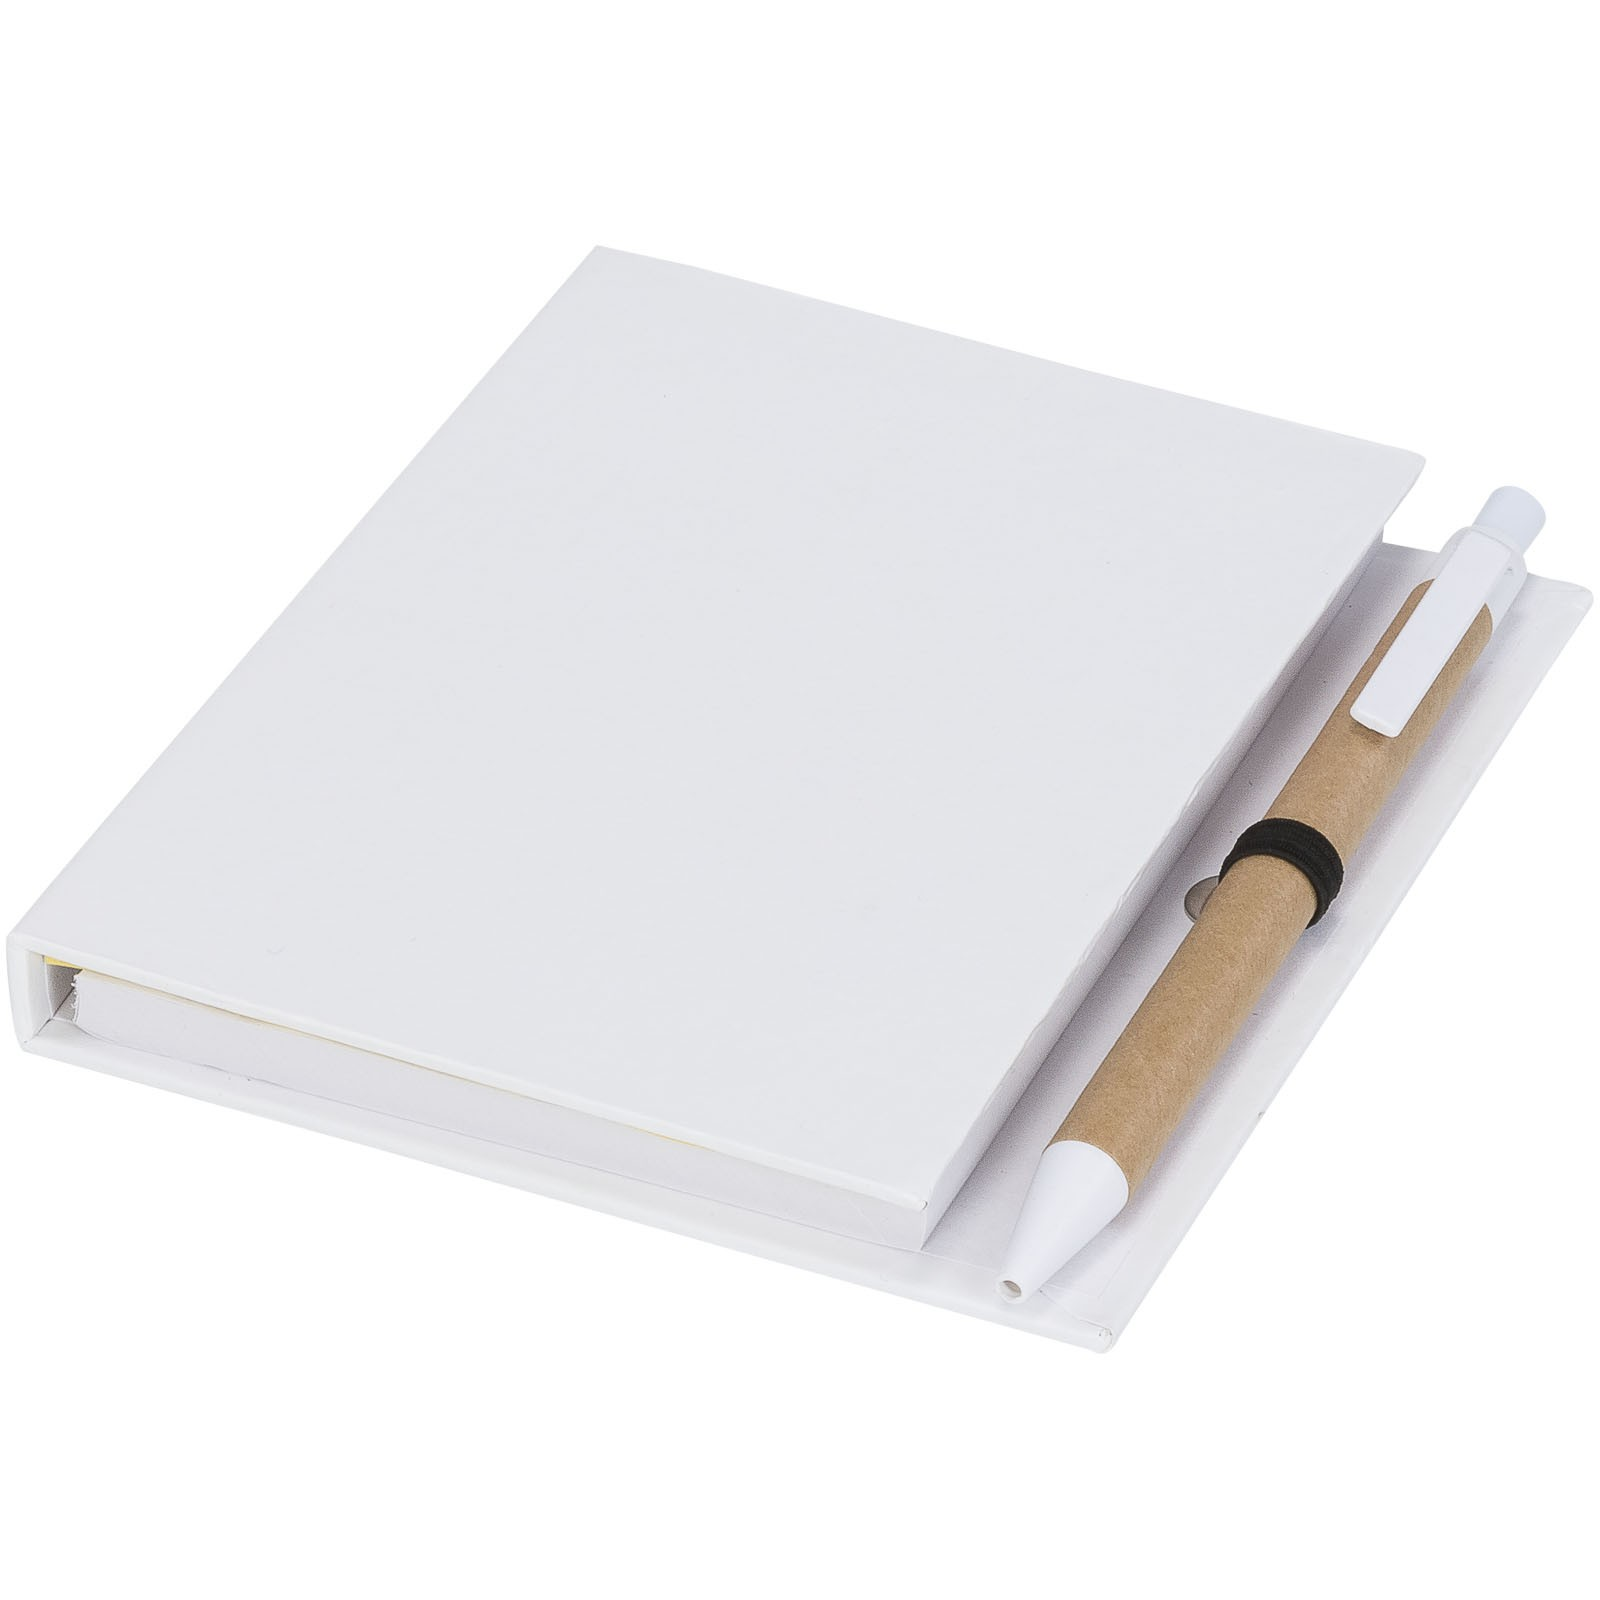 Colours combo pad with pen - White